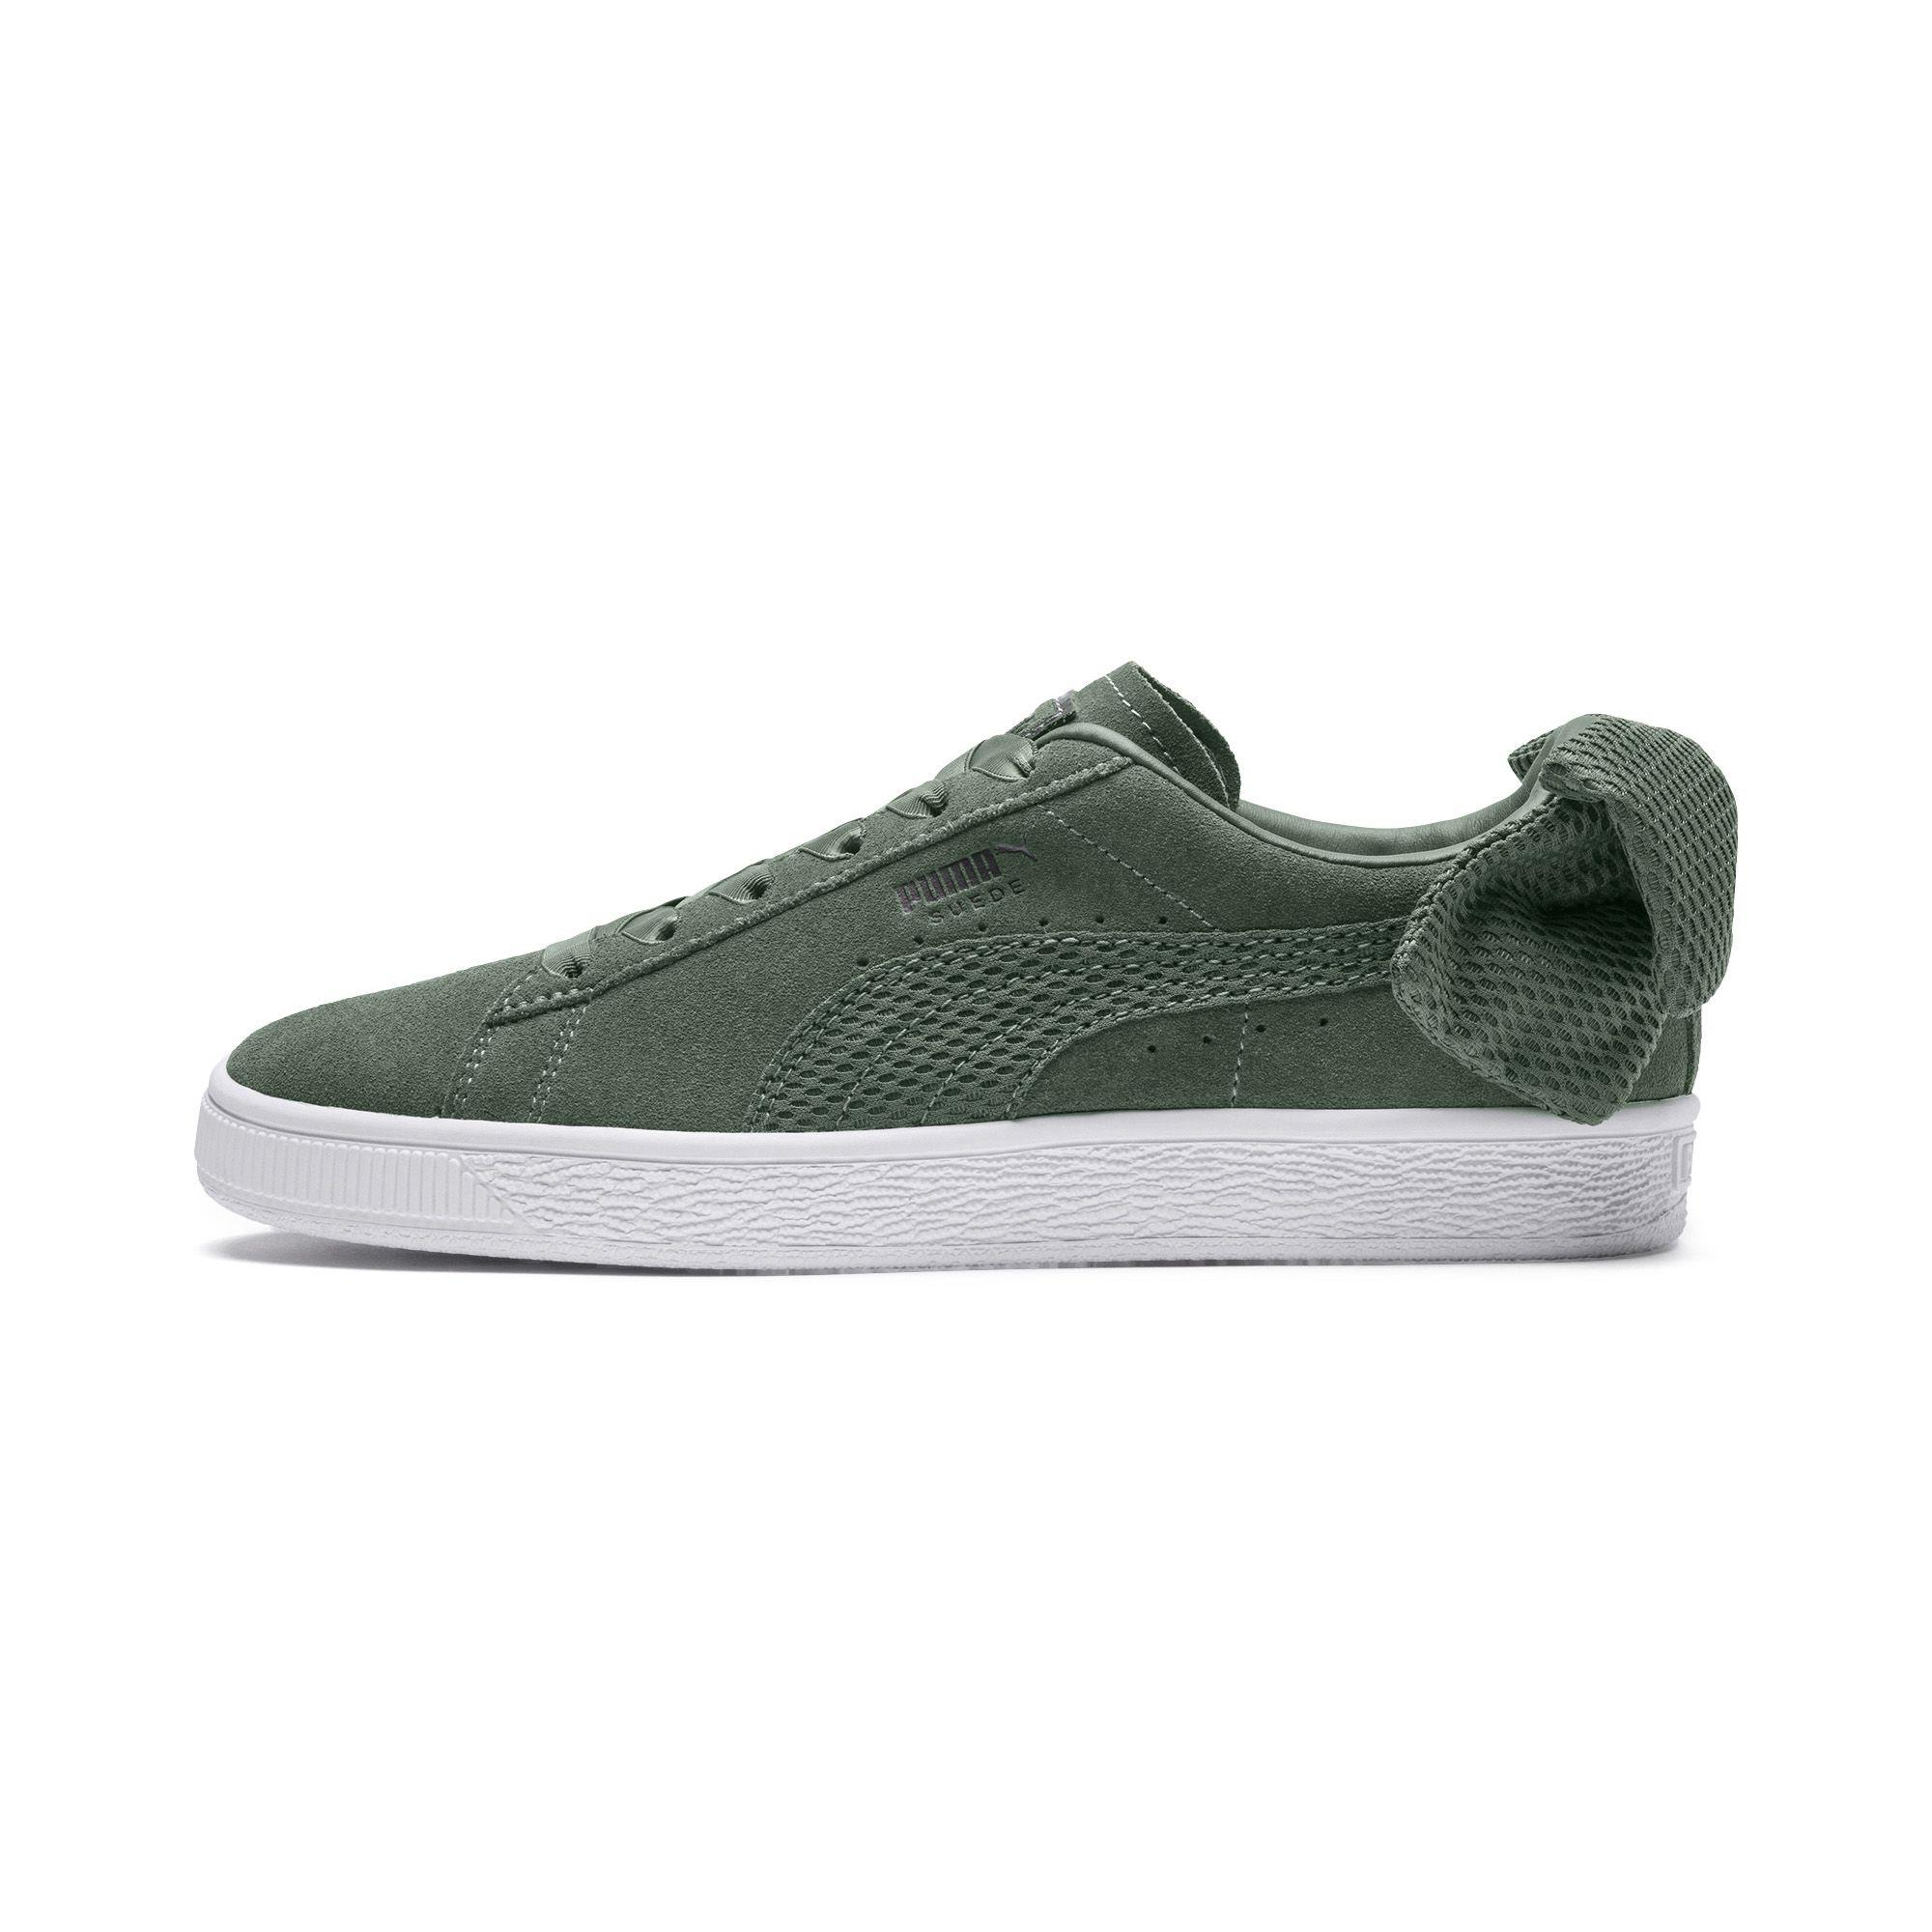 Lyst - PUMA Suede Bow Uprising Women s Sneakers 68772a66c